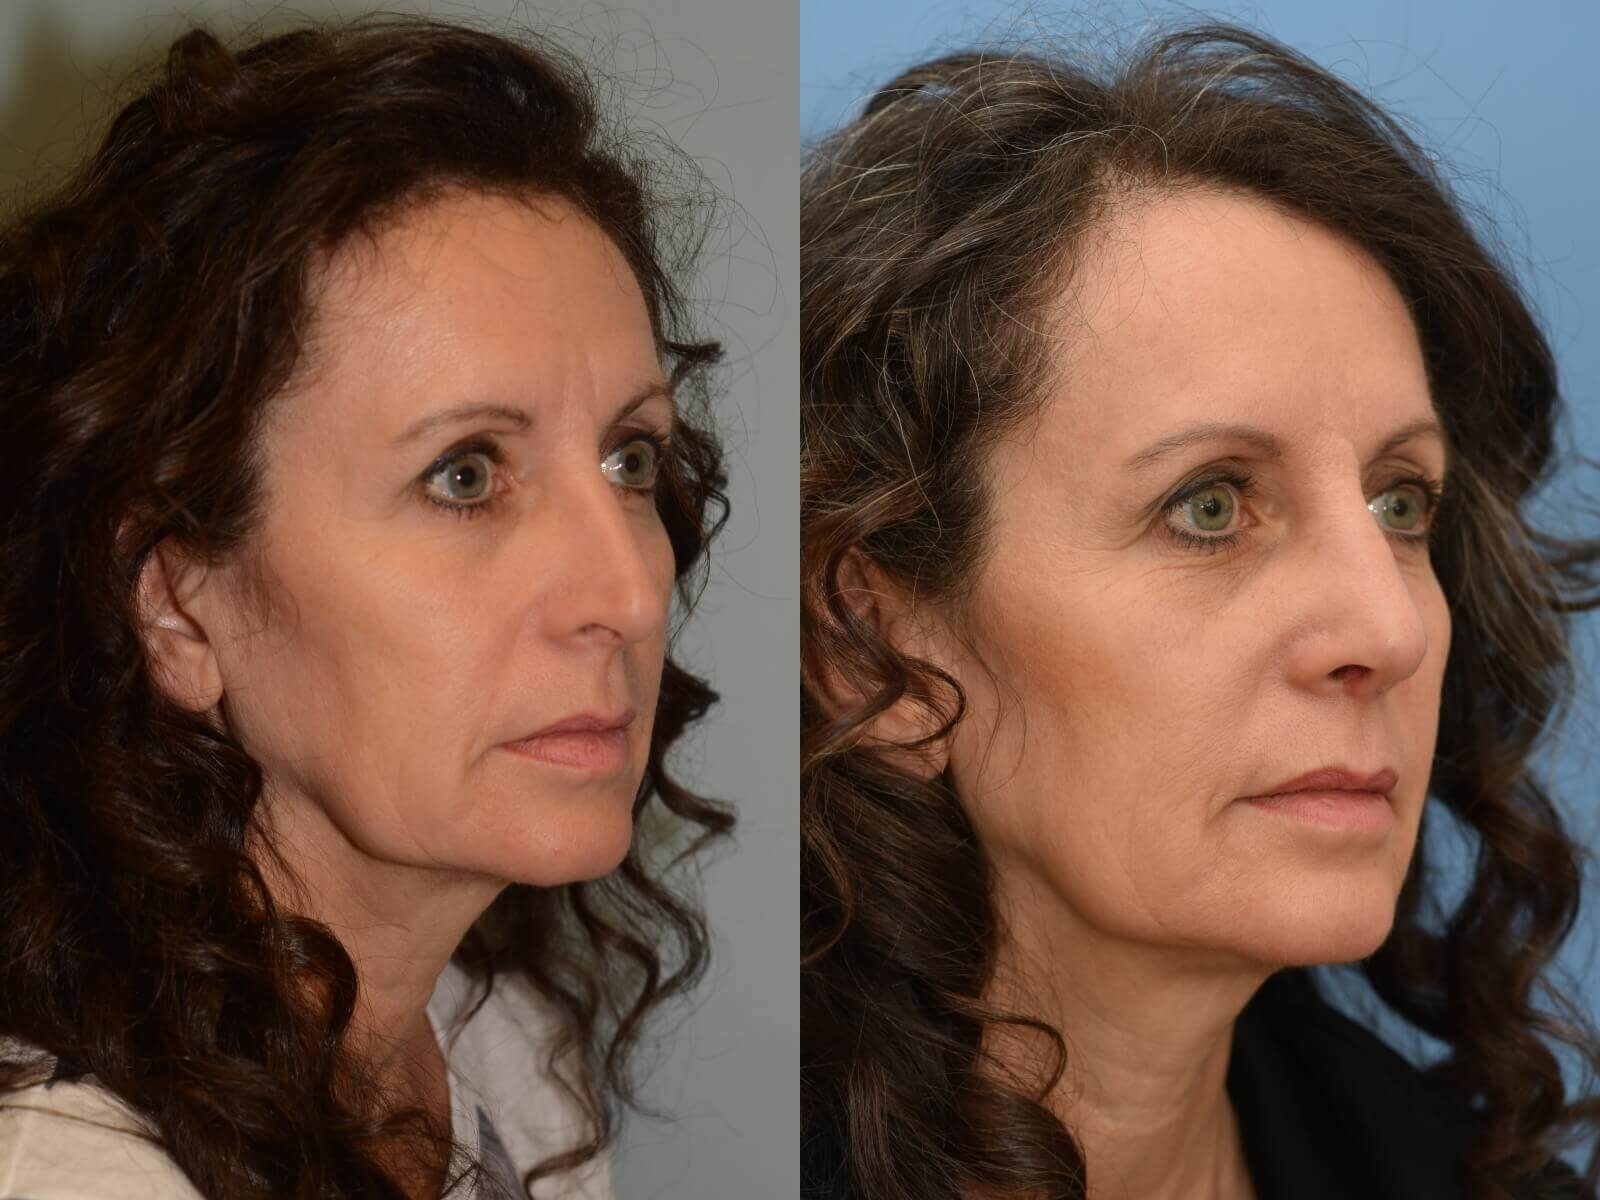 A more balanced nose! Before and After